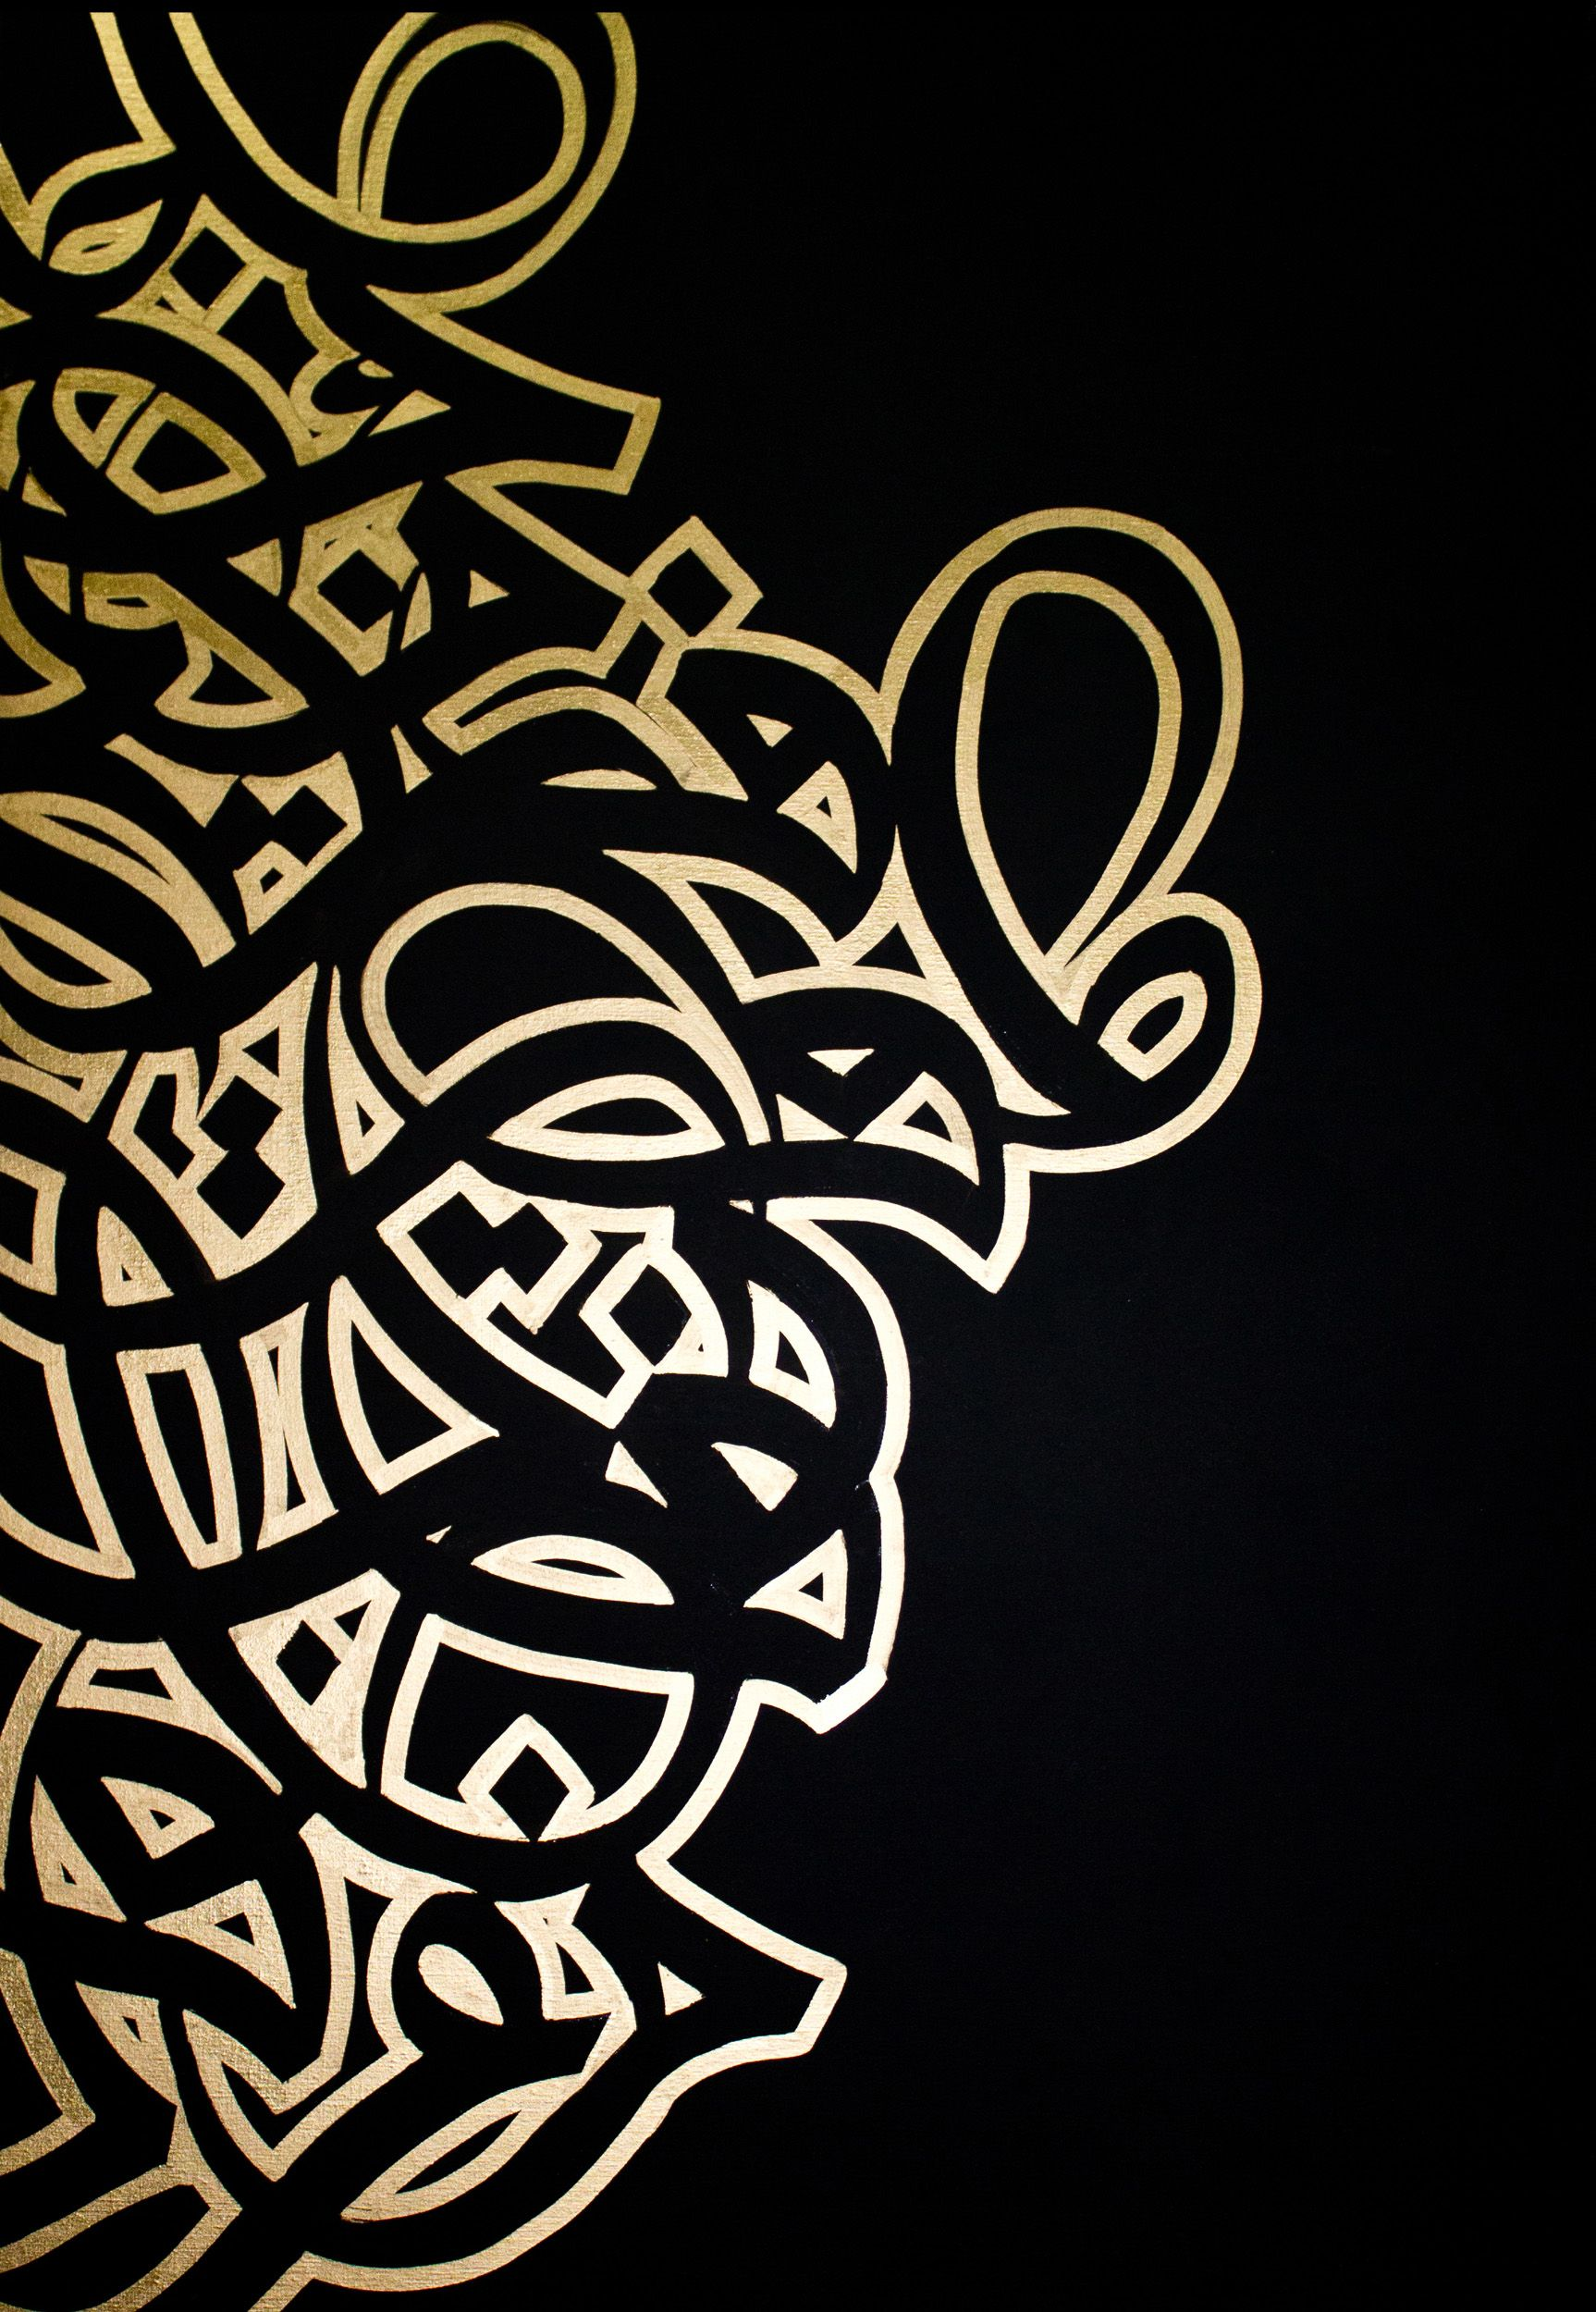 Painting by el seed tunisian french calligraffiti artist